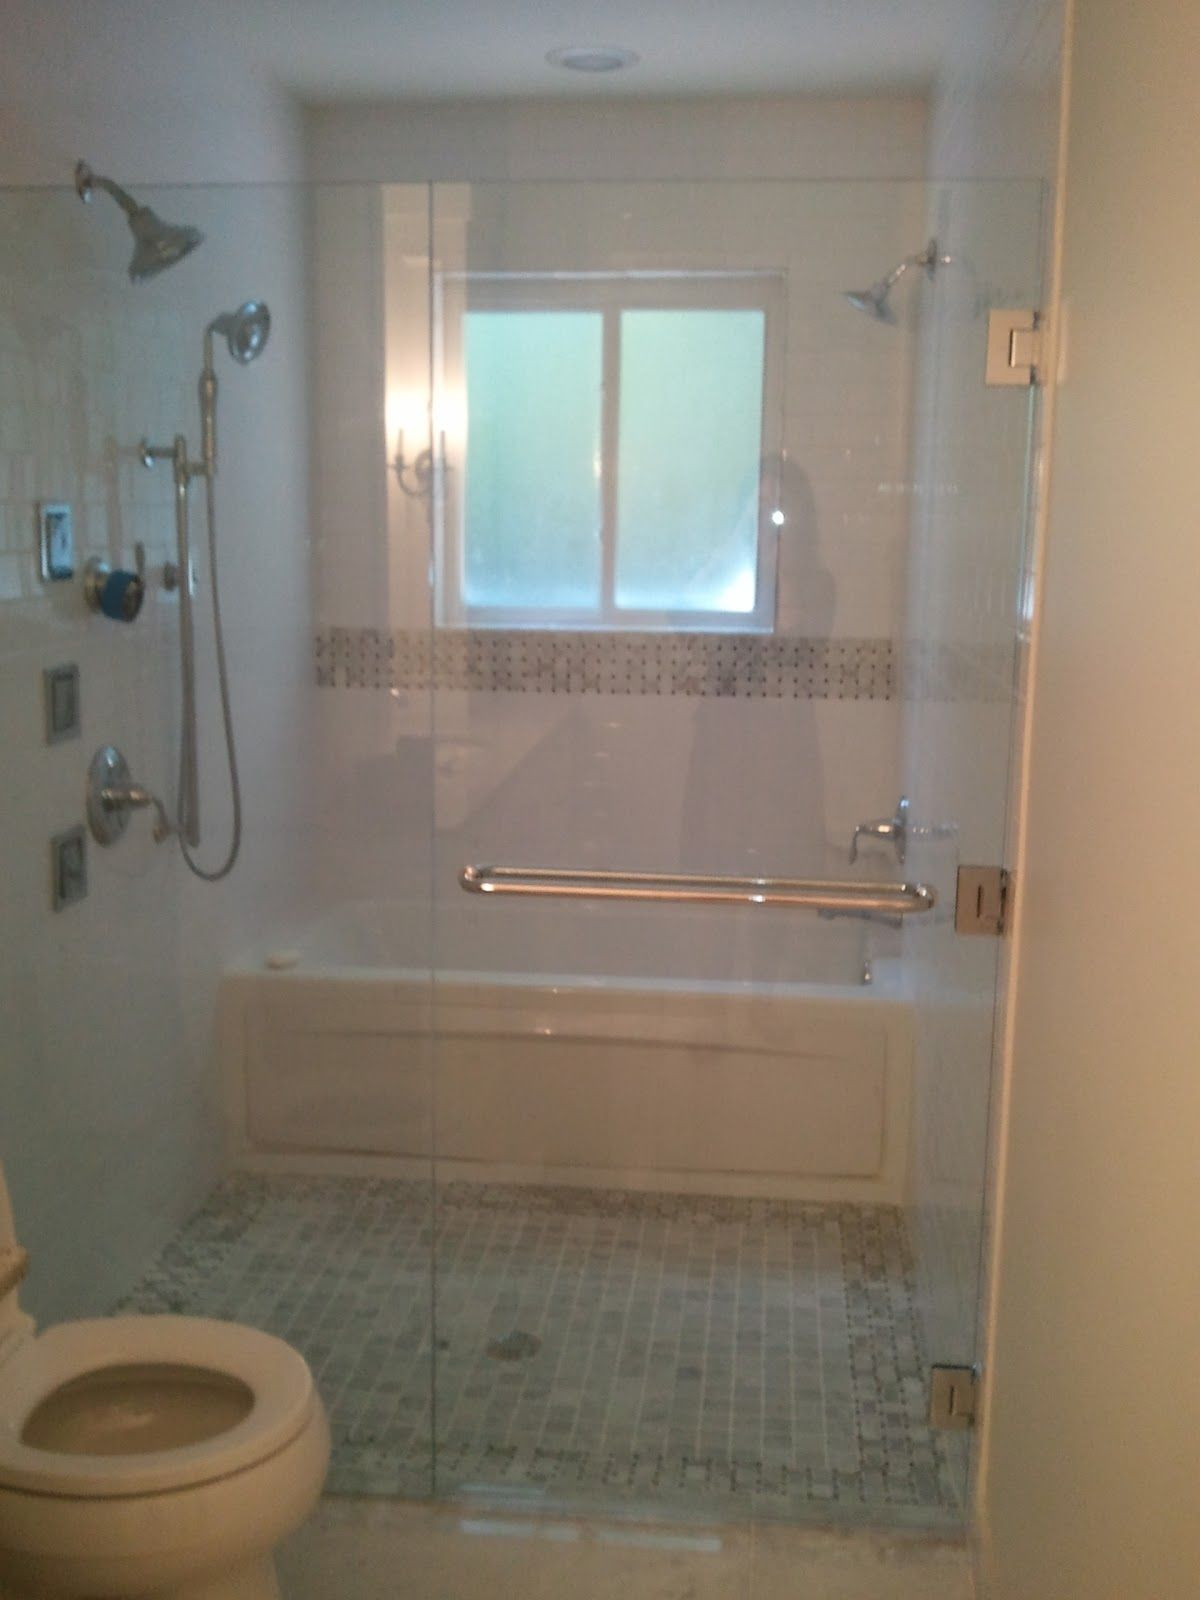 Tub shower conversion - bathroom remodel, Products: bathtubs ...